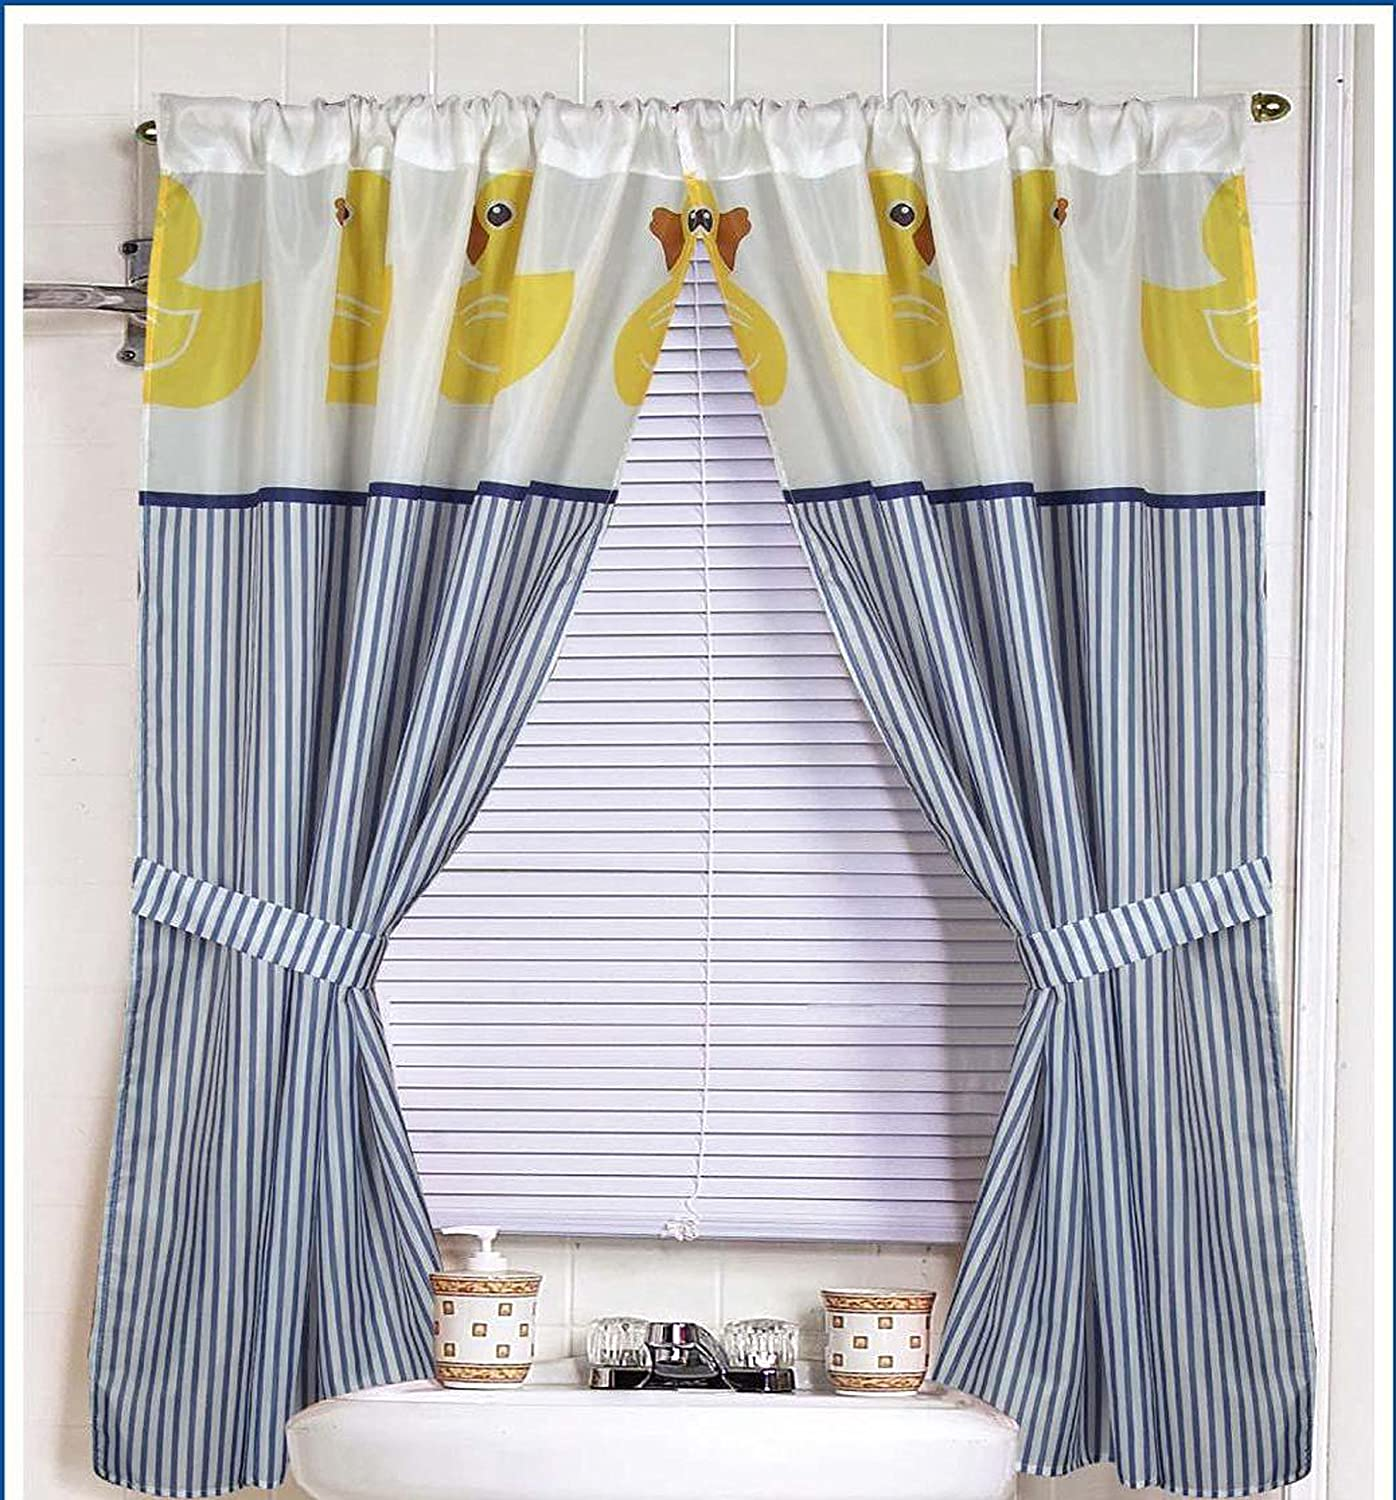 Amazon.com: Yellow Rubber Ducky Window Curtain: Home & Kitchen